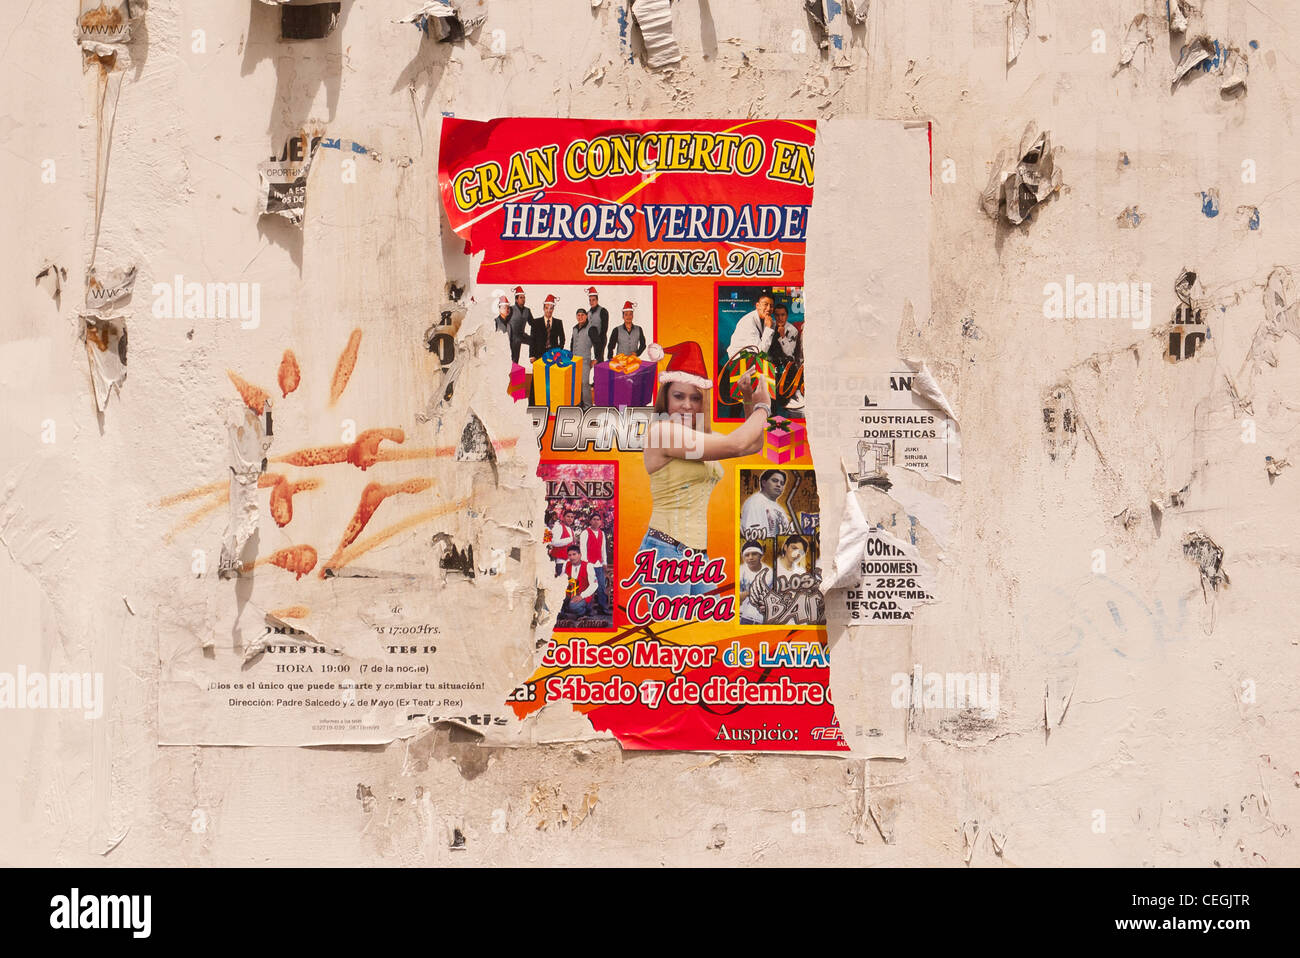 A tattered red wall concert poster for a 'gran concierto' for 'Heros Verdade' in Latacunga, Ecuador. - Stock Image